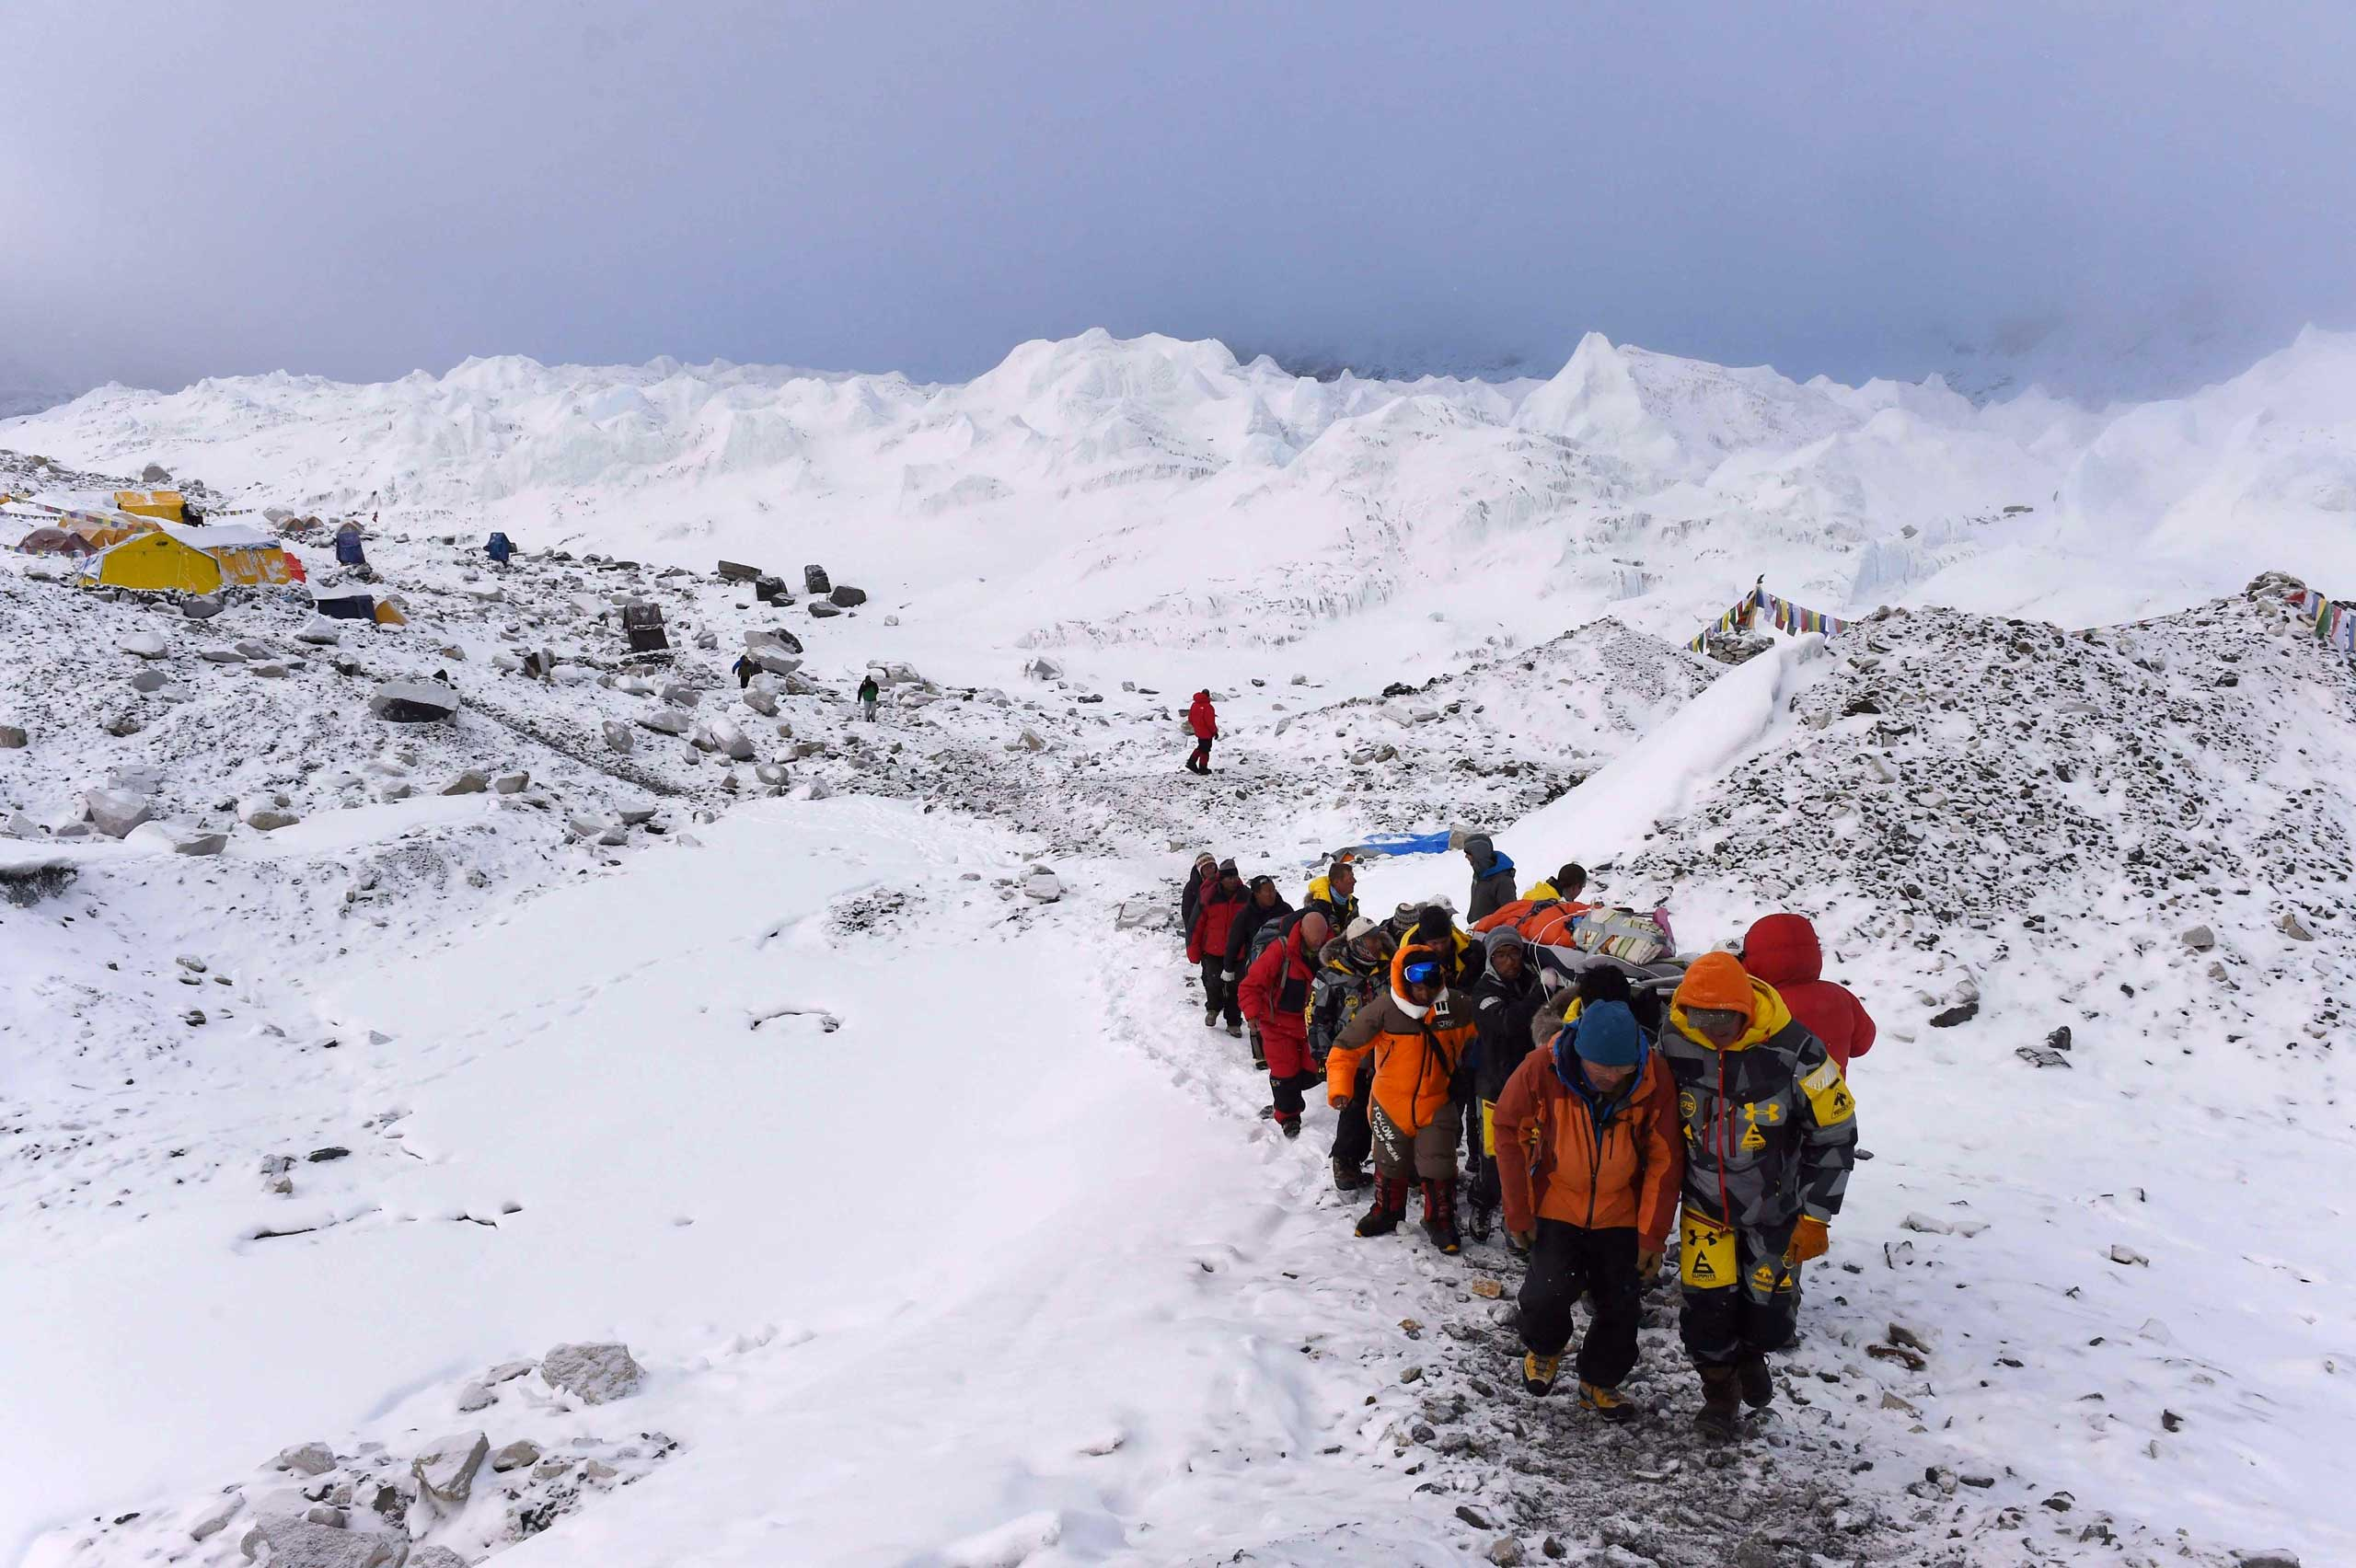 A person injured in Saturday's avalanche is carried by rescue members to be airlifted by a rescue helicopter at Everest Base Camp on April 26, 2015.